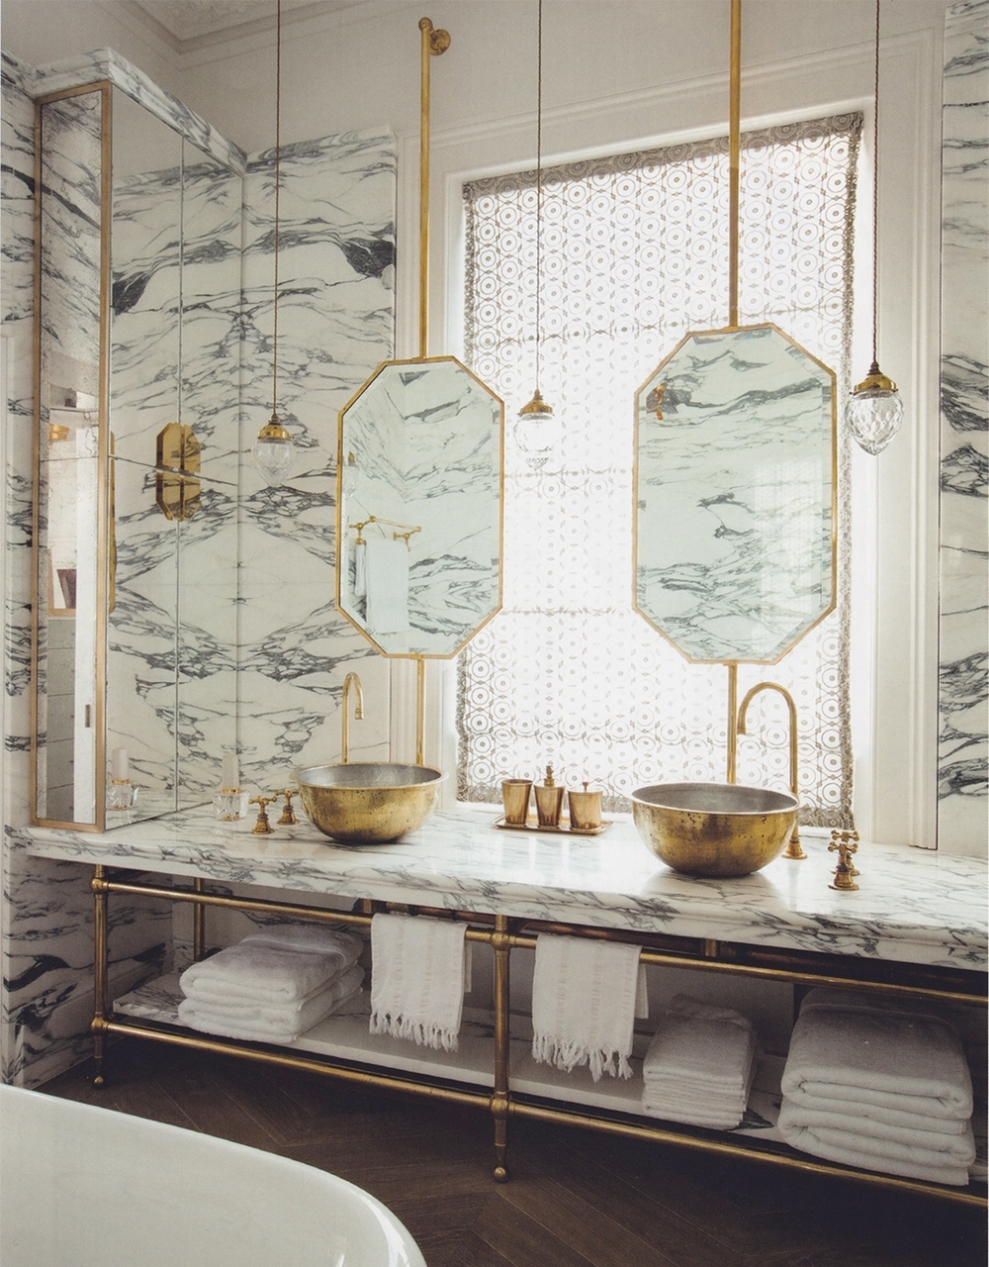 A London Bathroom Fit for a Queen — STYLE 02138